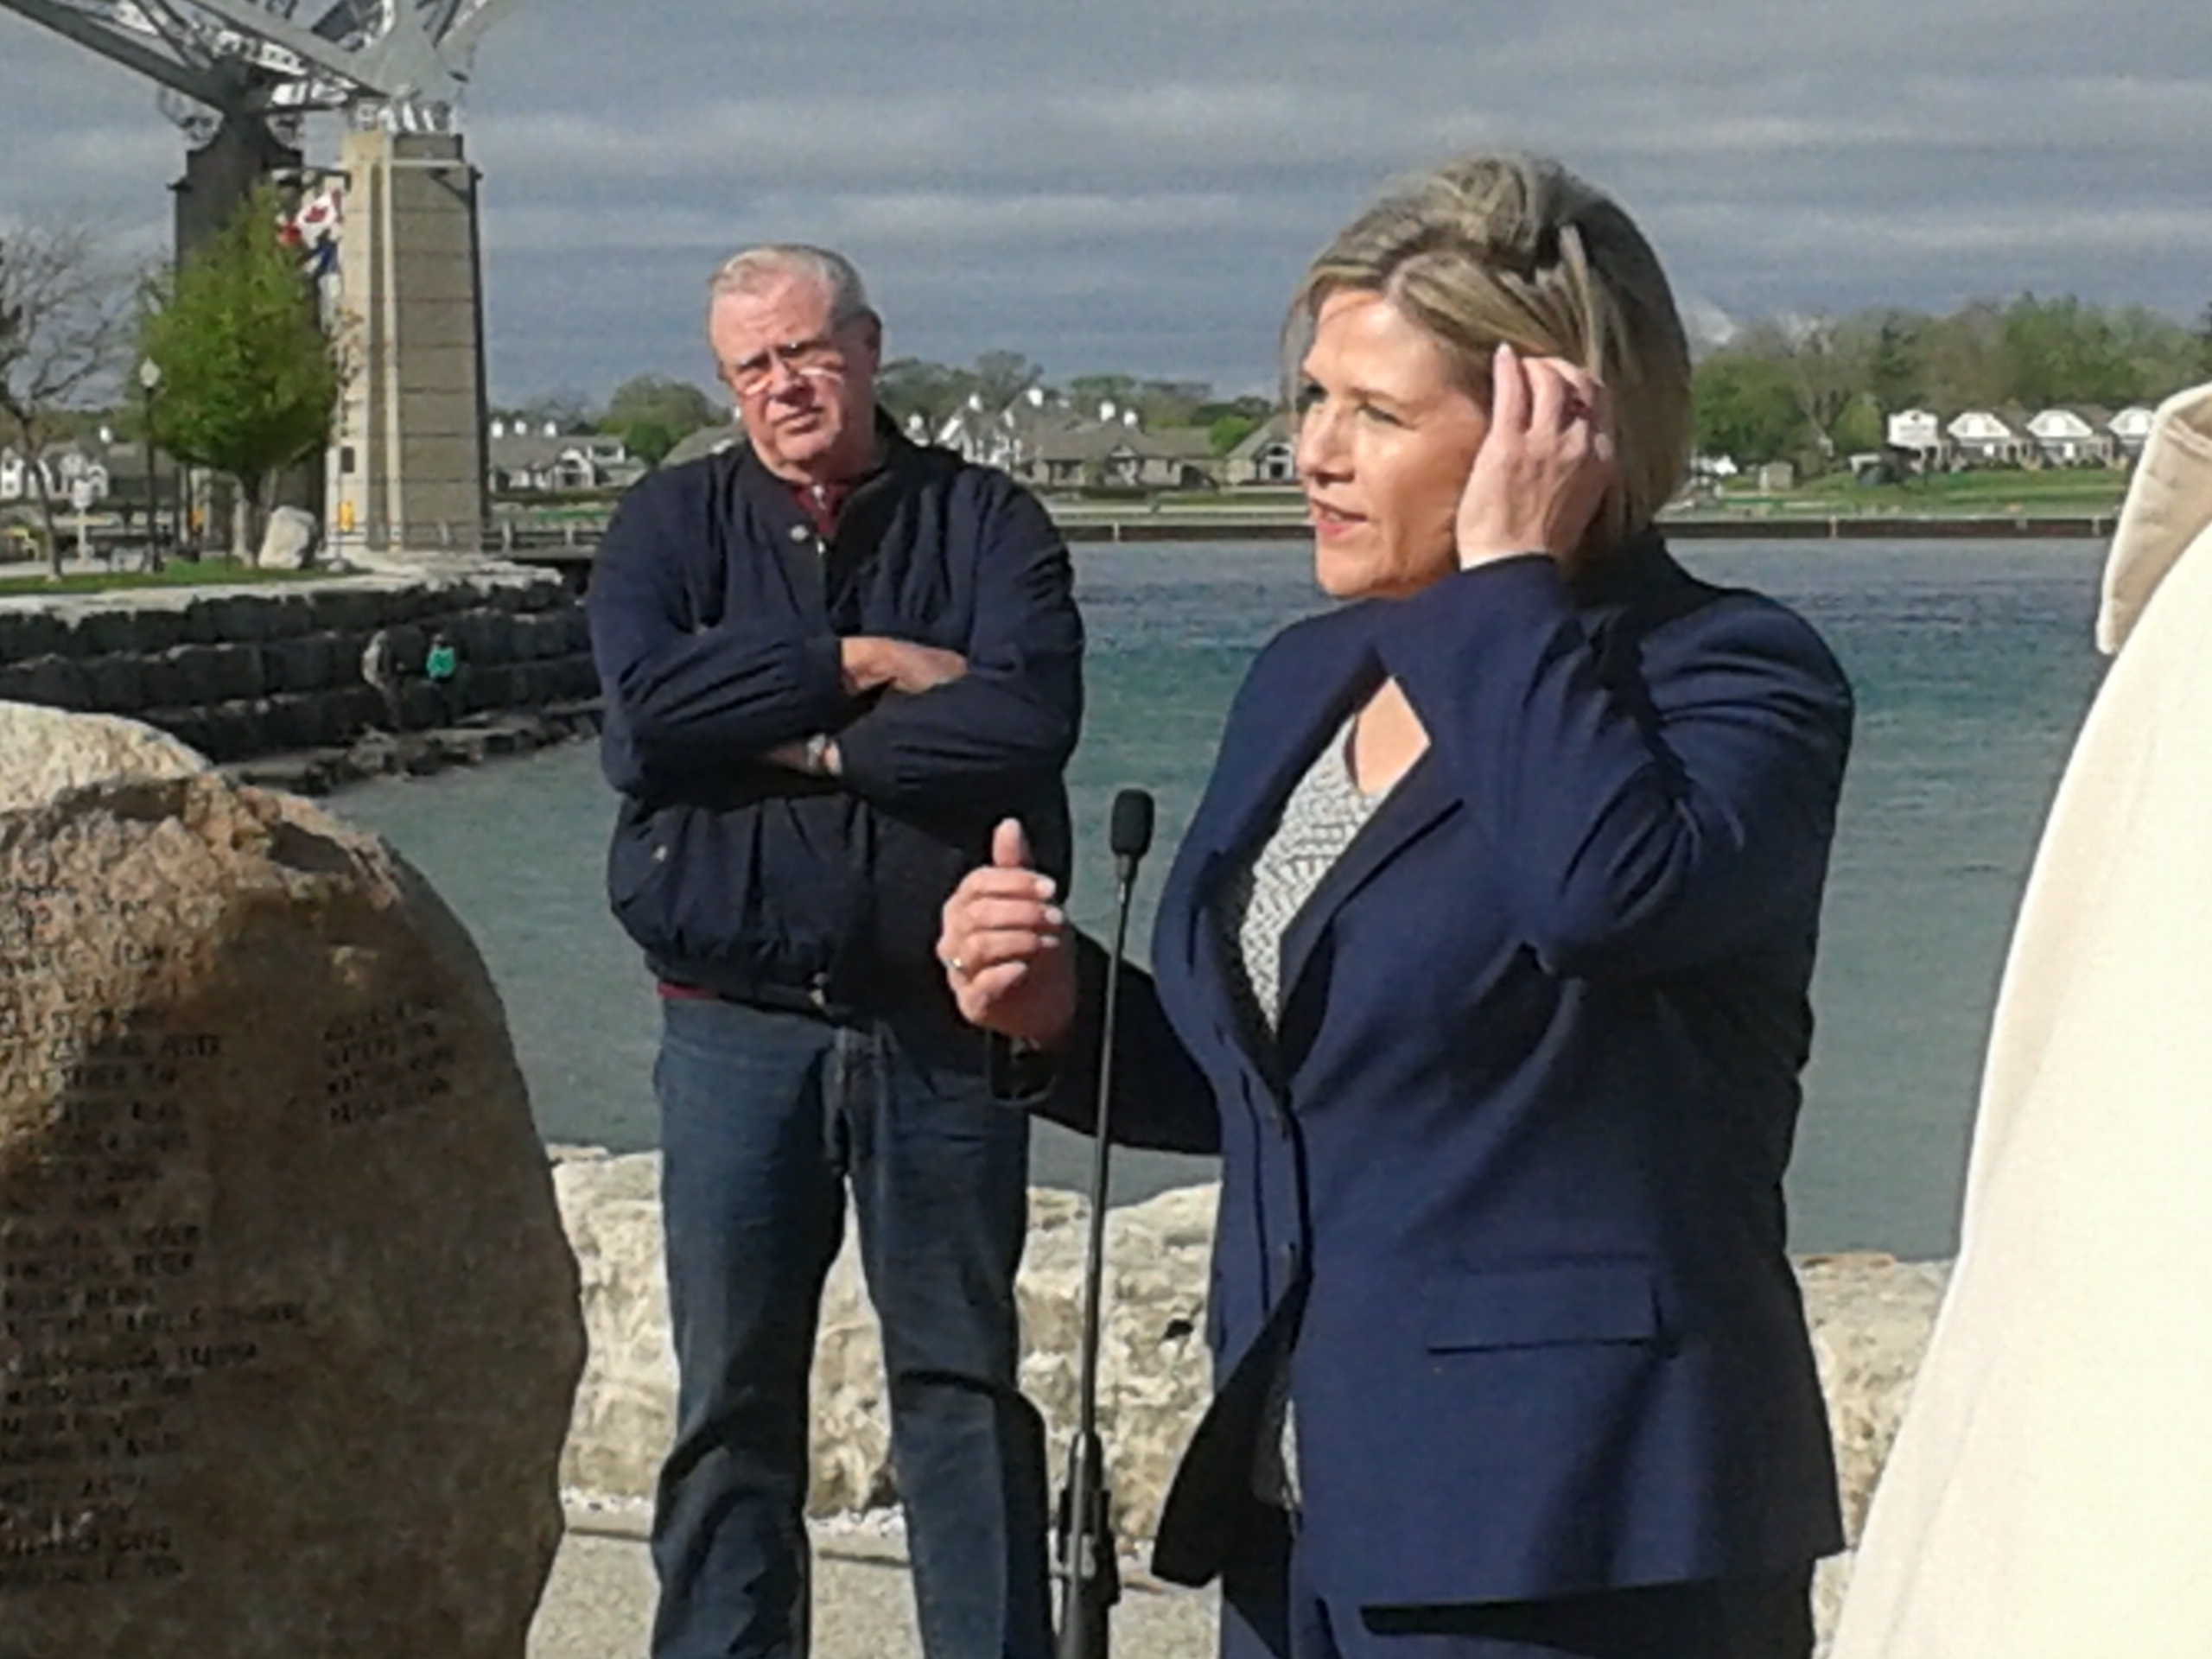 NDP Leader Andrea Horwath in Pt. Edward May 16, 2014. Photo by Stephanie Chaves